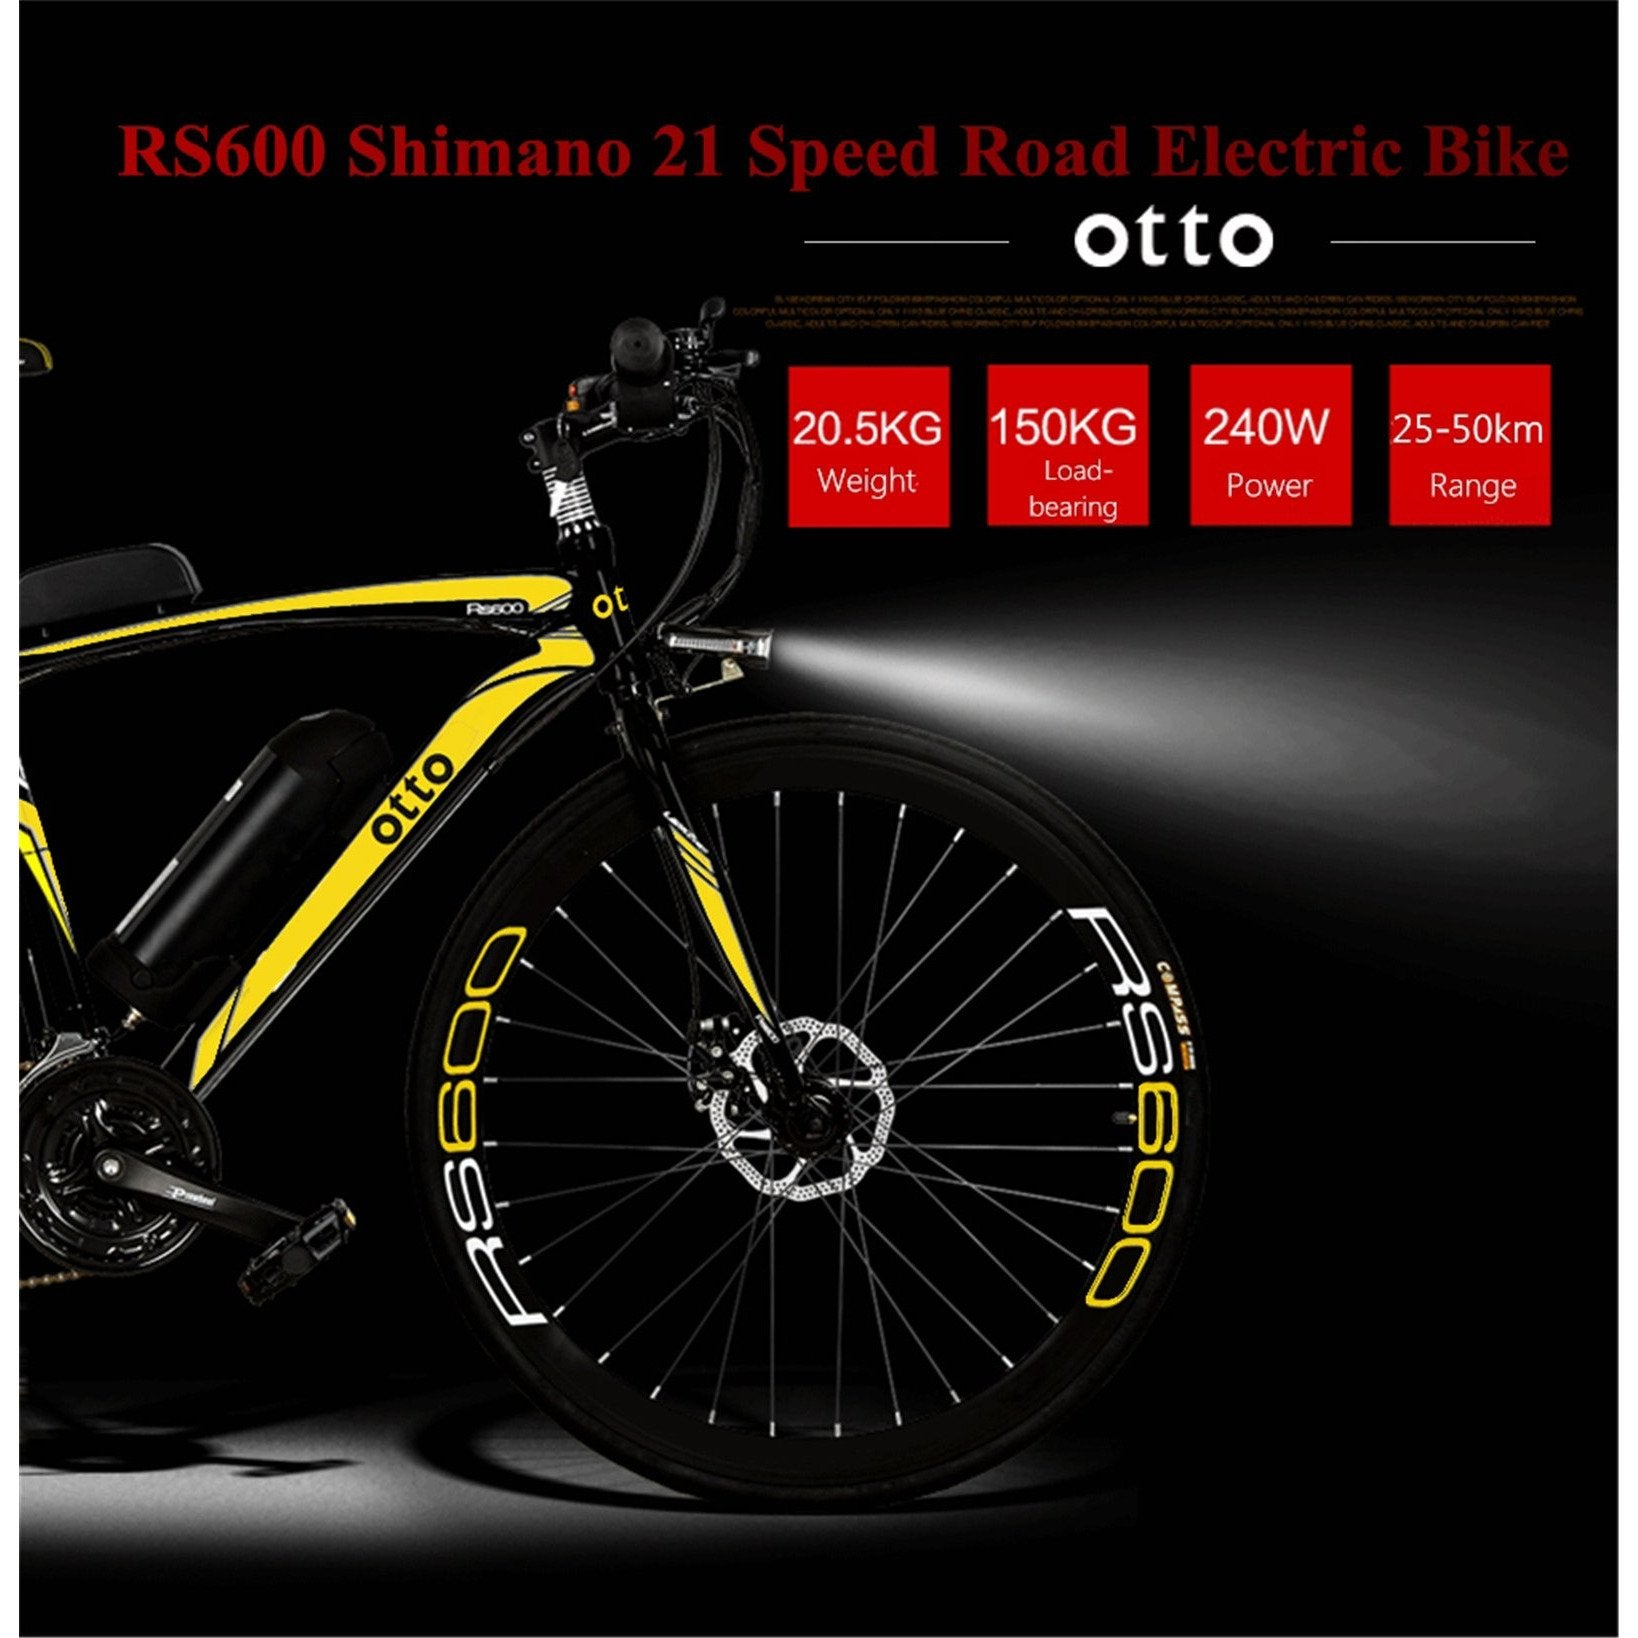 OTTO Electric Bike Ebike RS600 700c Shimano 21 Speed Carbon Steel